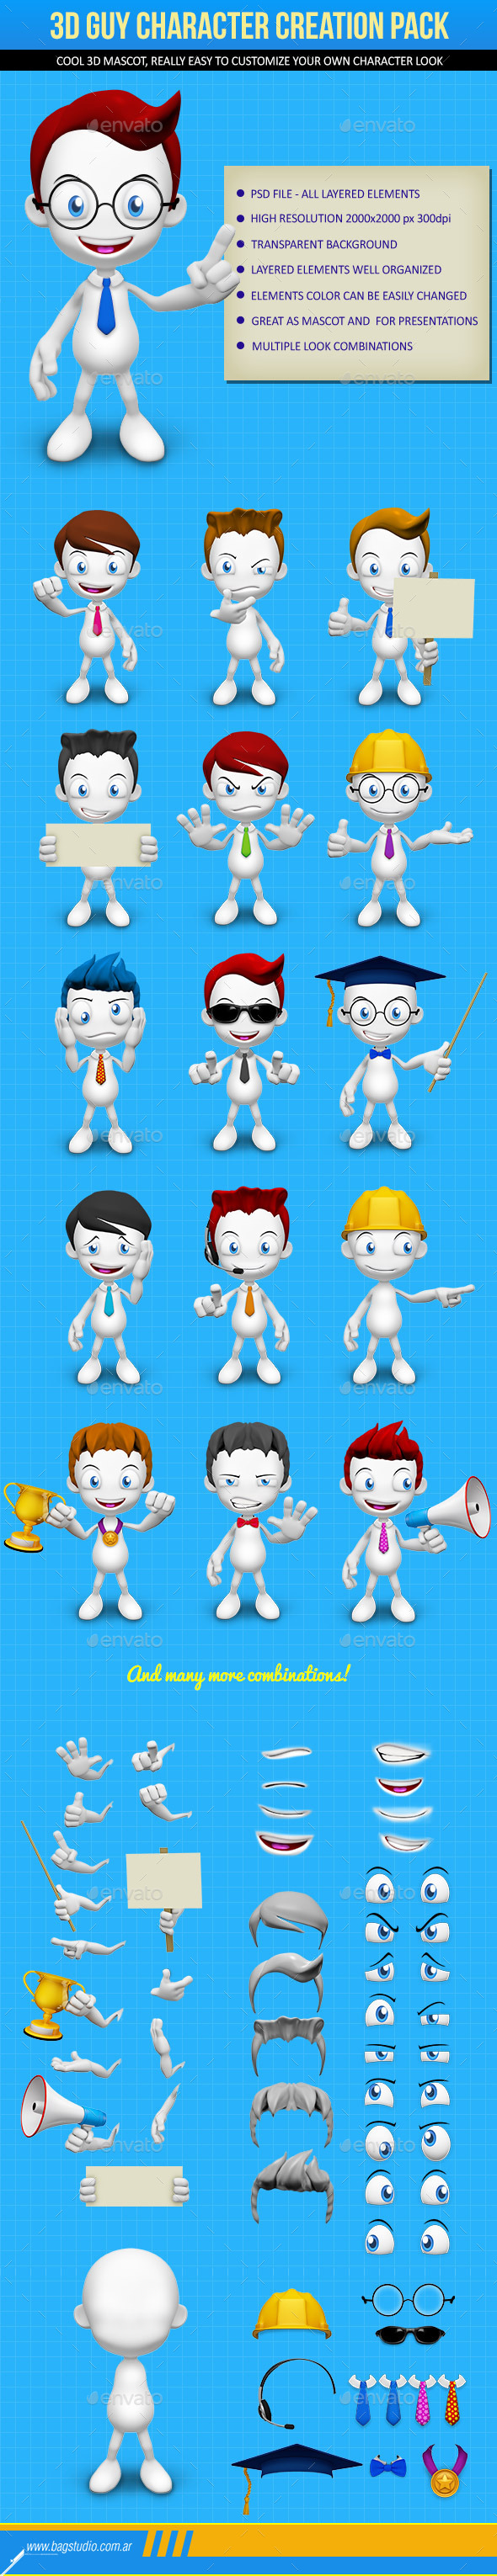 GraphicRiver 3D Guy Character Creation Pack 8897718